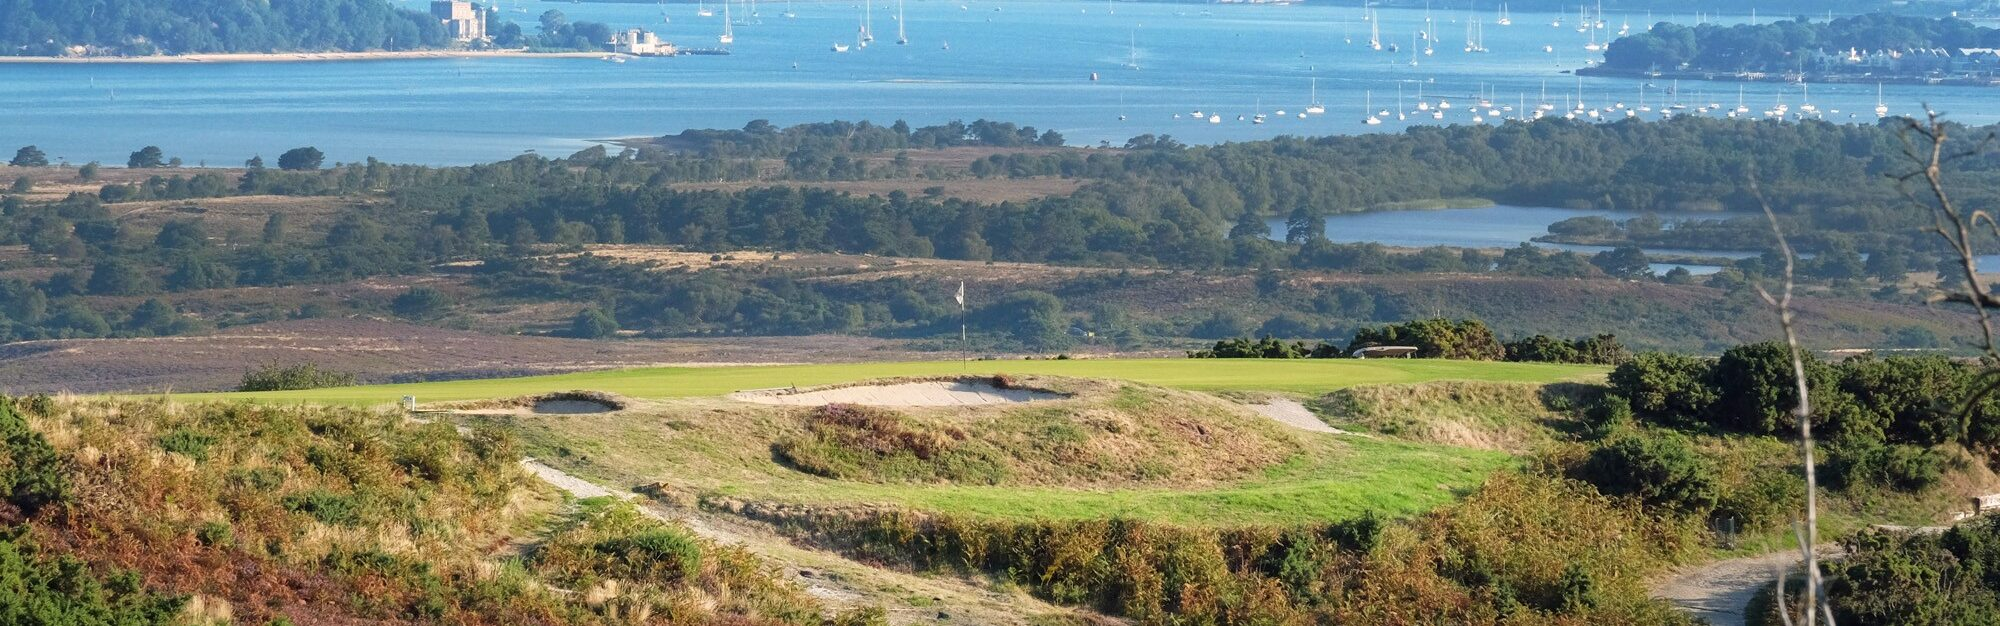 Isle of Purbeck: The breathtaking course with a special backstory